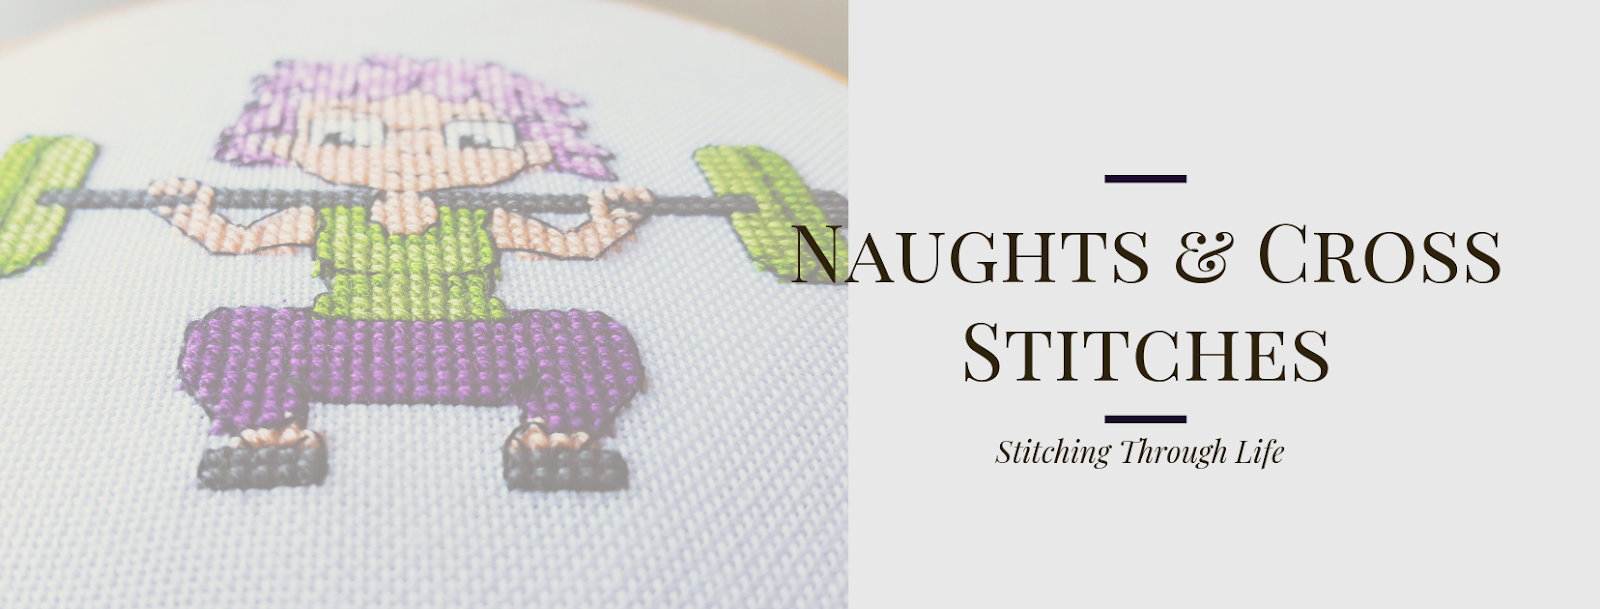 Naughts & Cross stitches